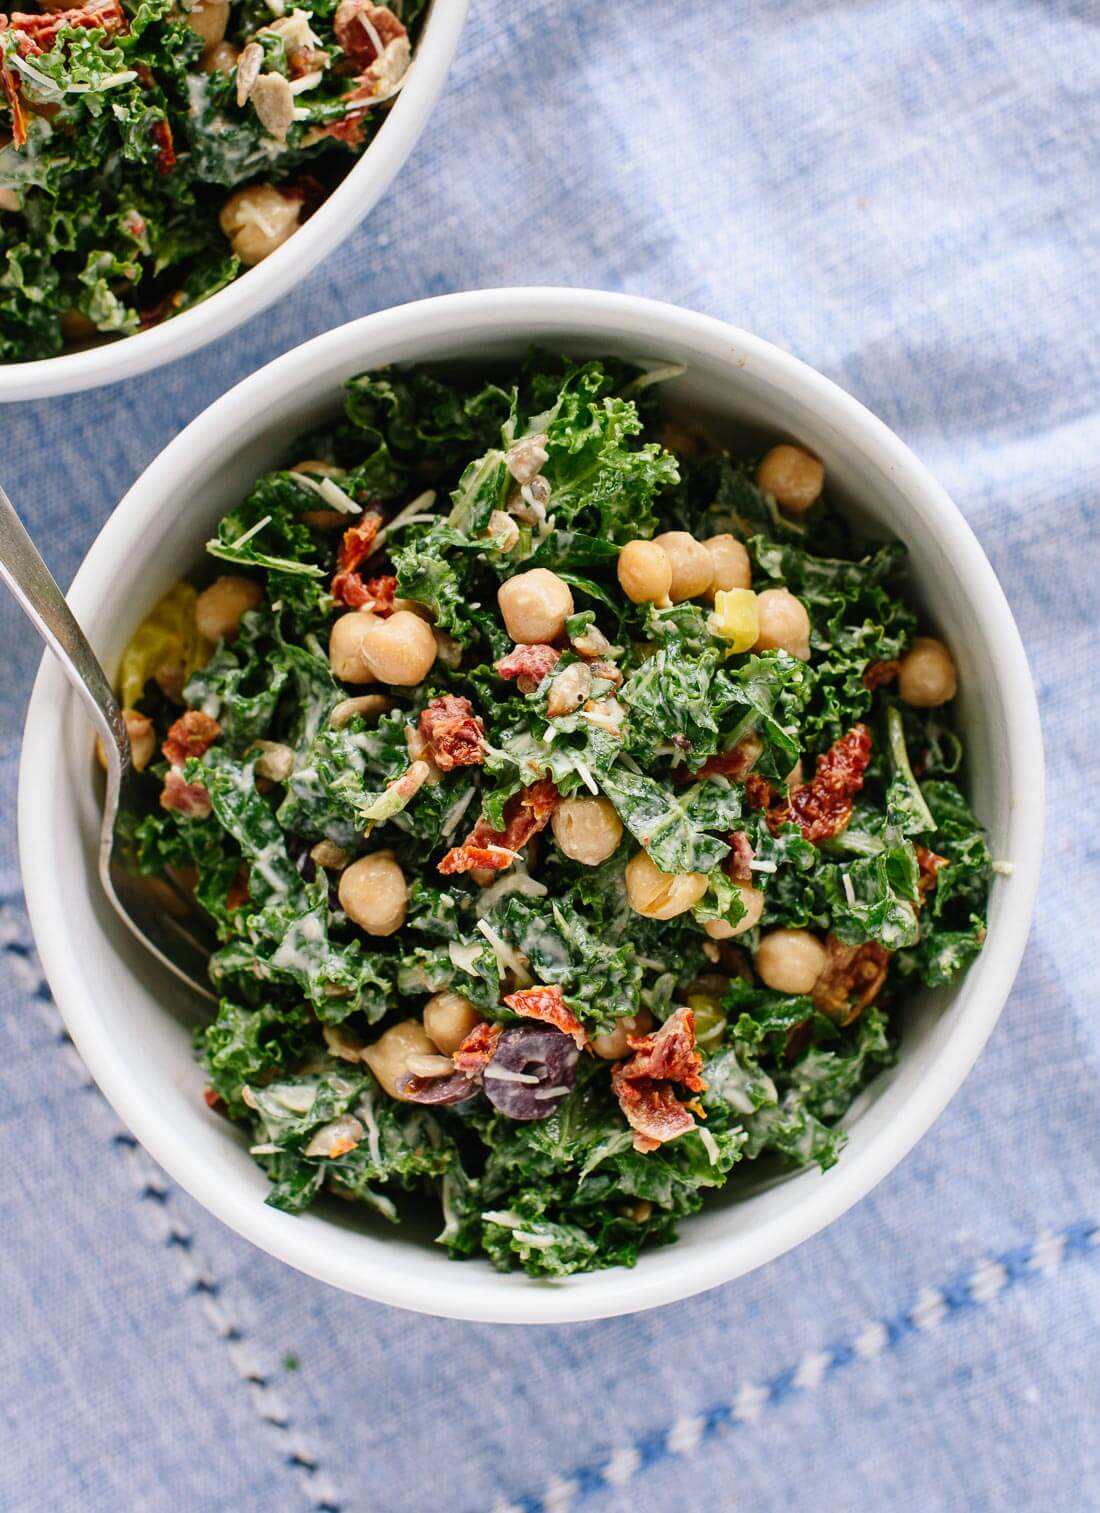 Get your greens with this healthy and satisfying Greek kale salad recipe - cookieandkate.com